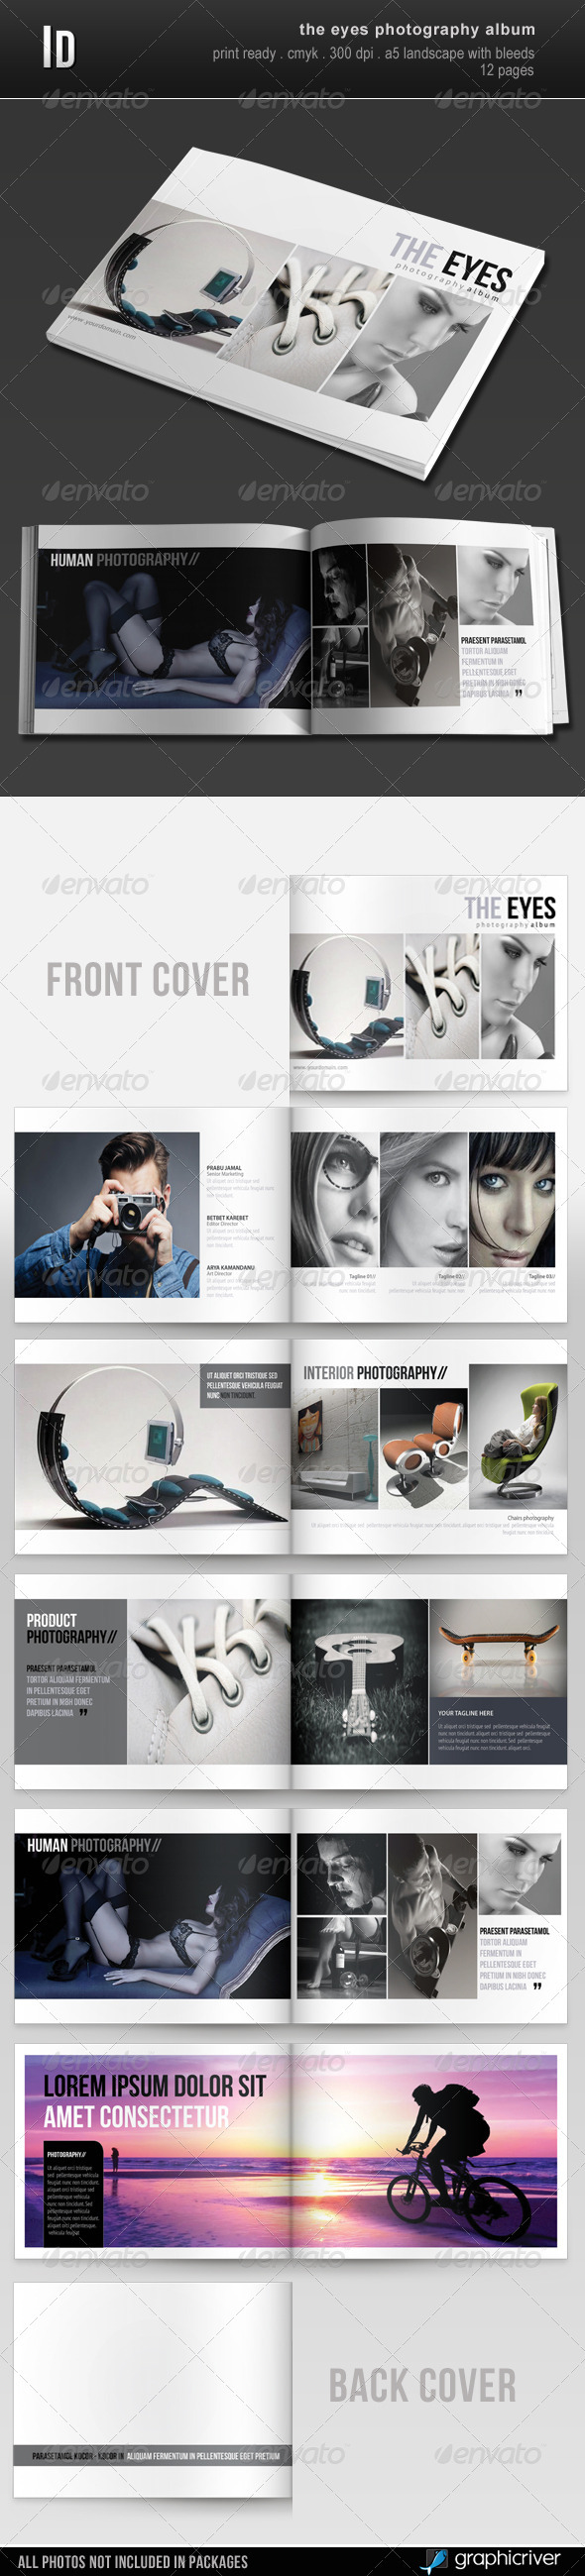 The Eyes Photography Album - Photo Albums Print Templates